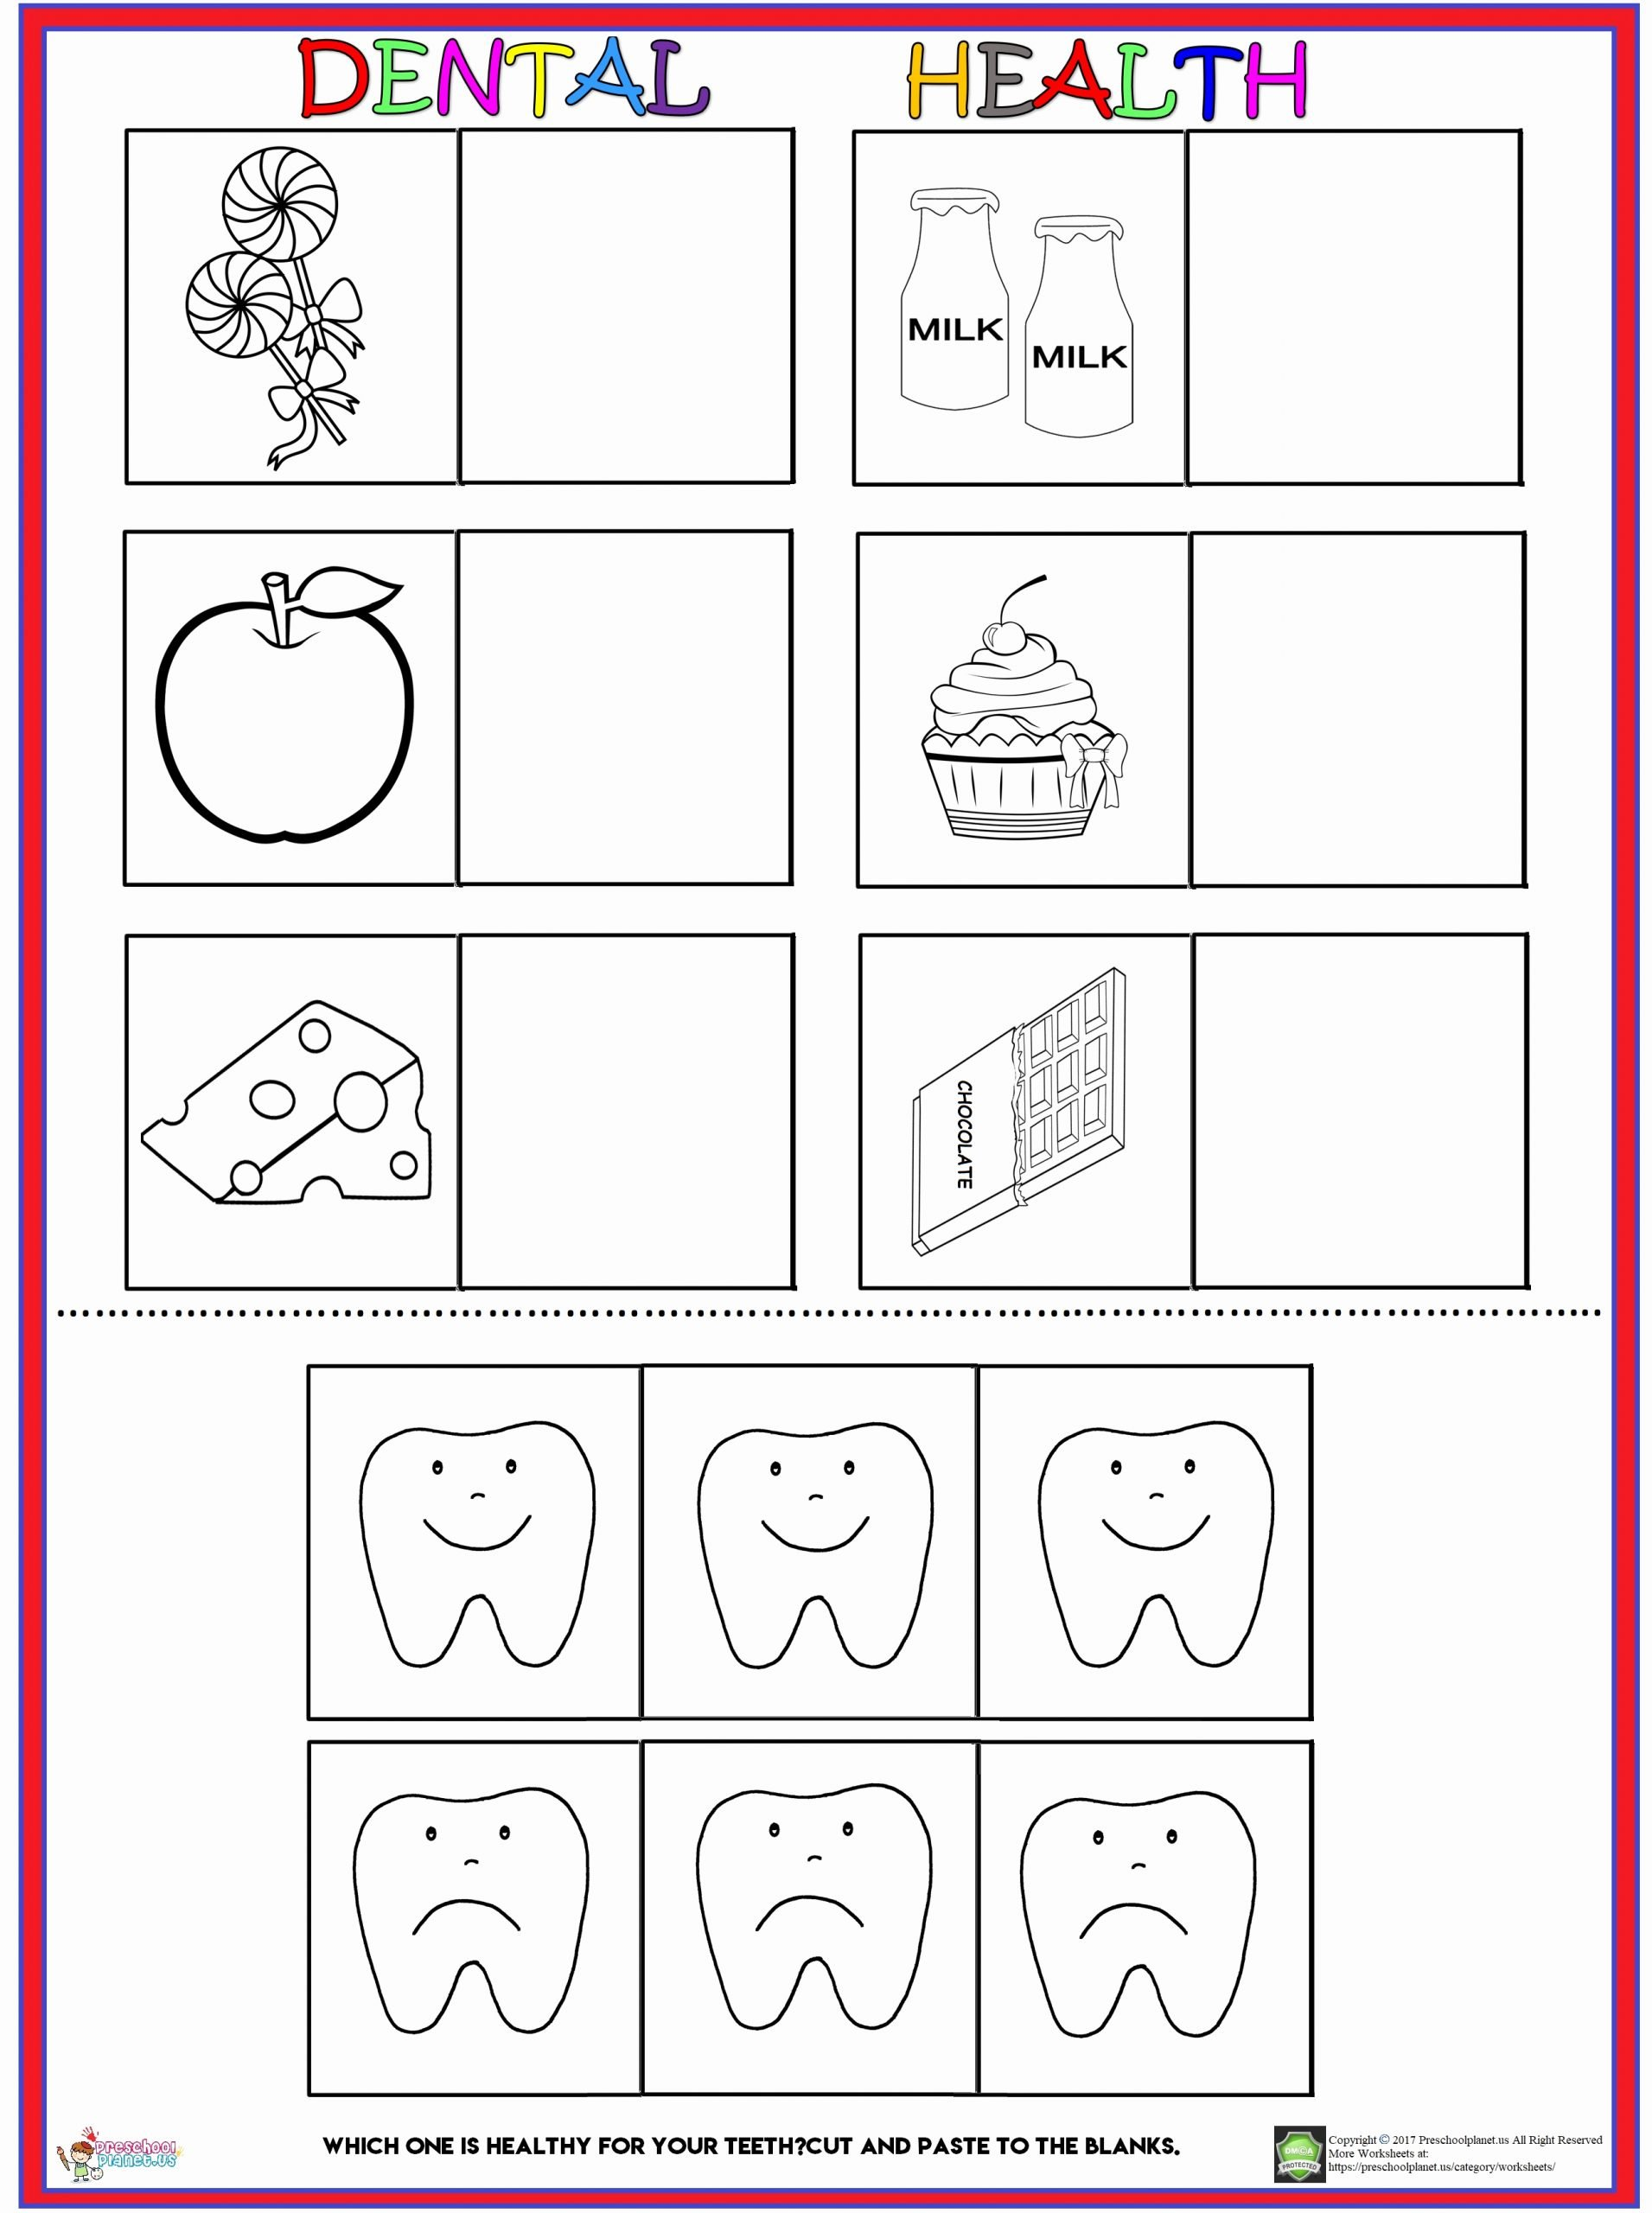 Worksheets for Preschoolers About Teeth Best Of Dental Health Worksheet – Preschoolplanet